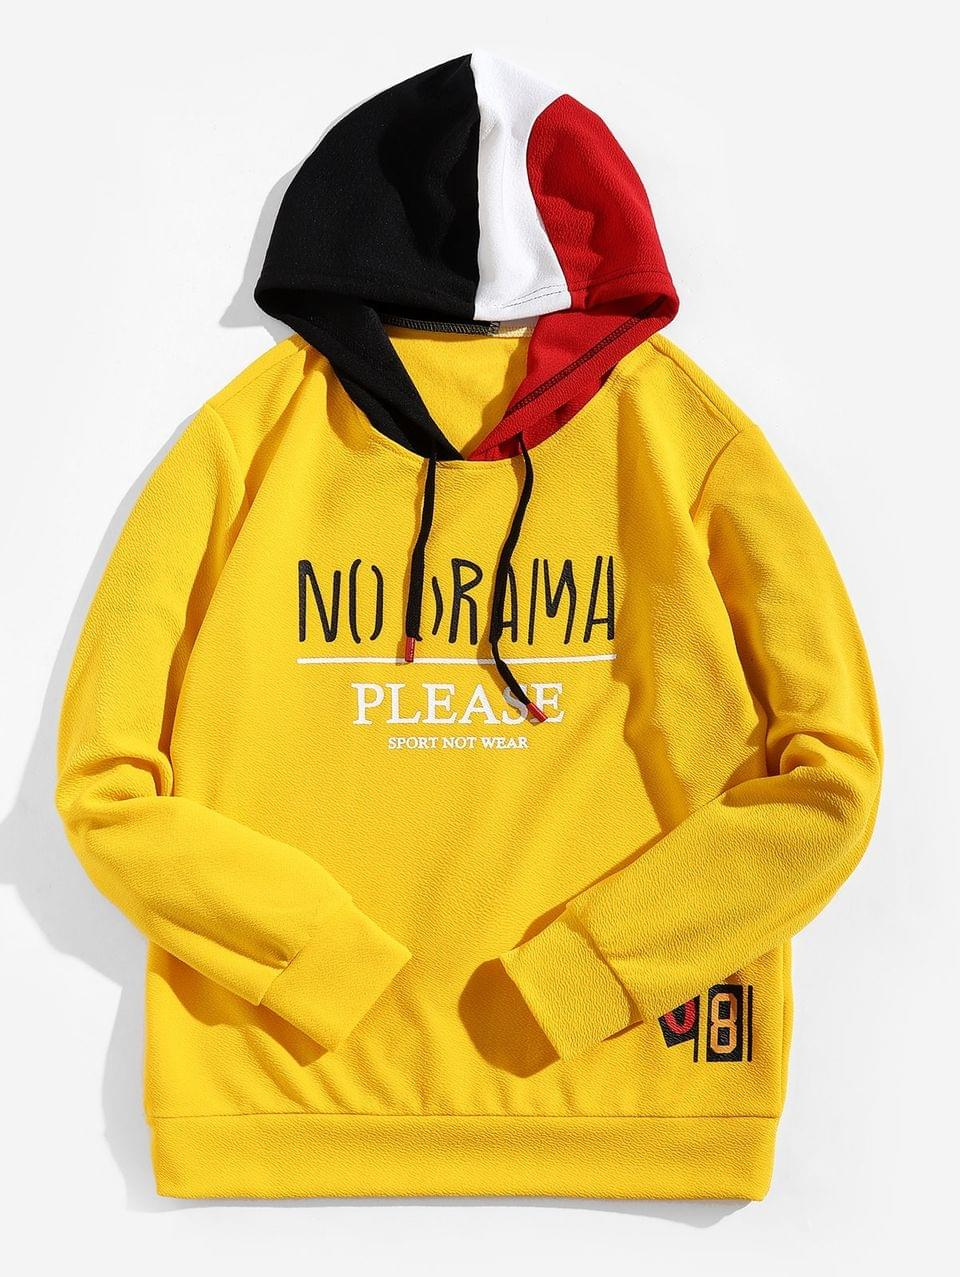 Men's Letter Graphic Color-blocking Spliced Hoodie - Yellow S